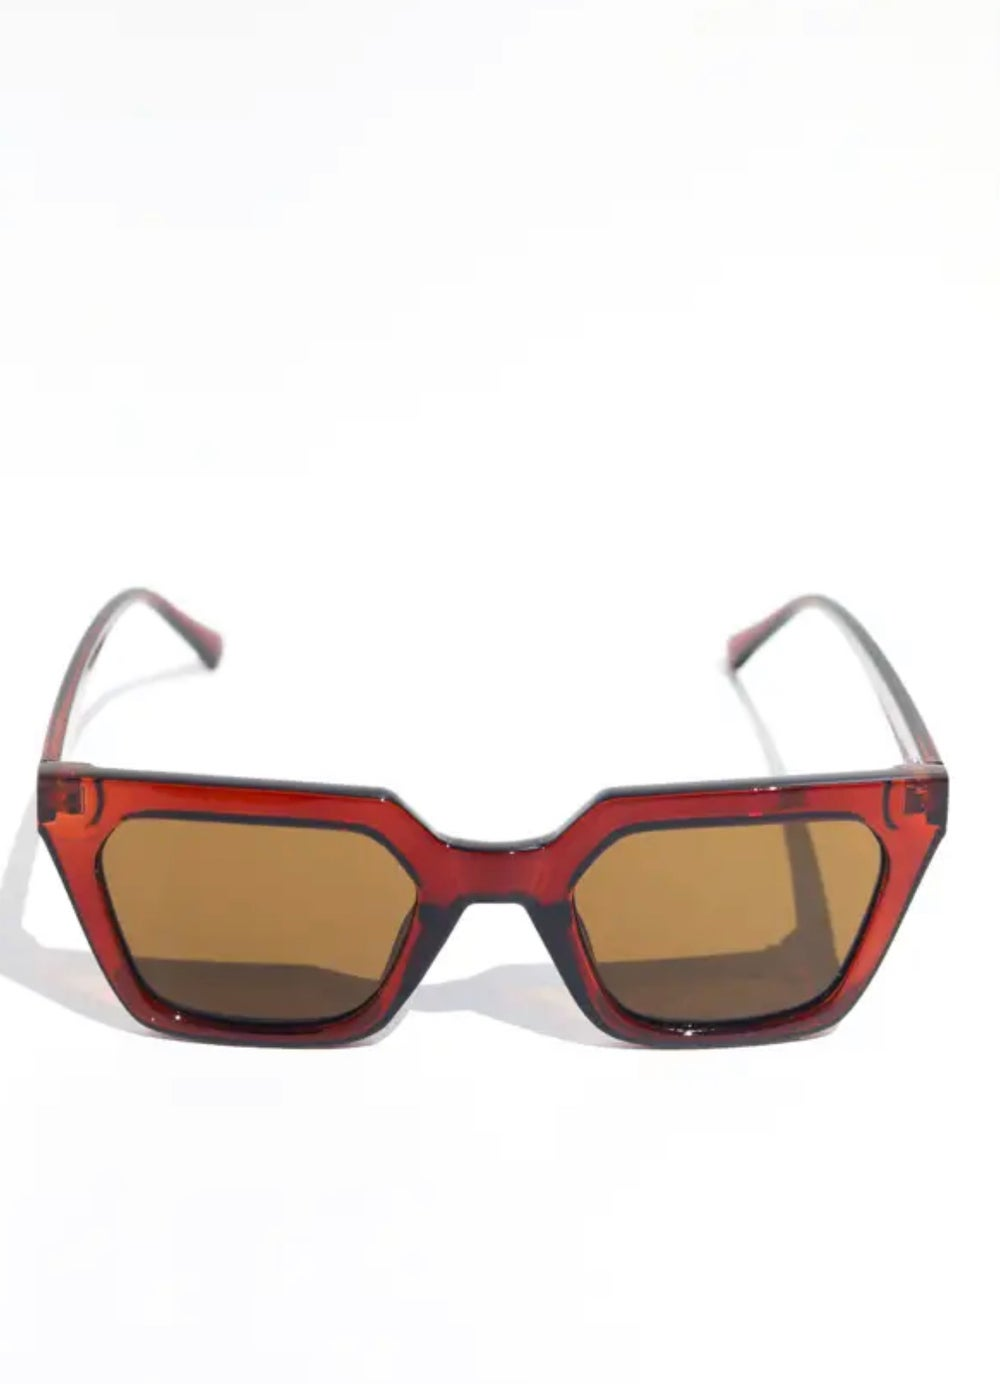 Image of Snatched Square Frame Sunglasses